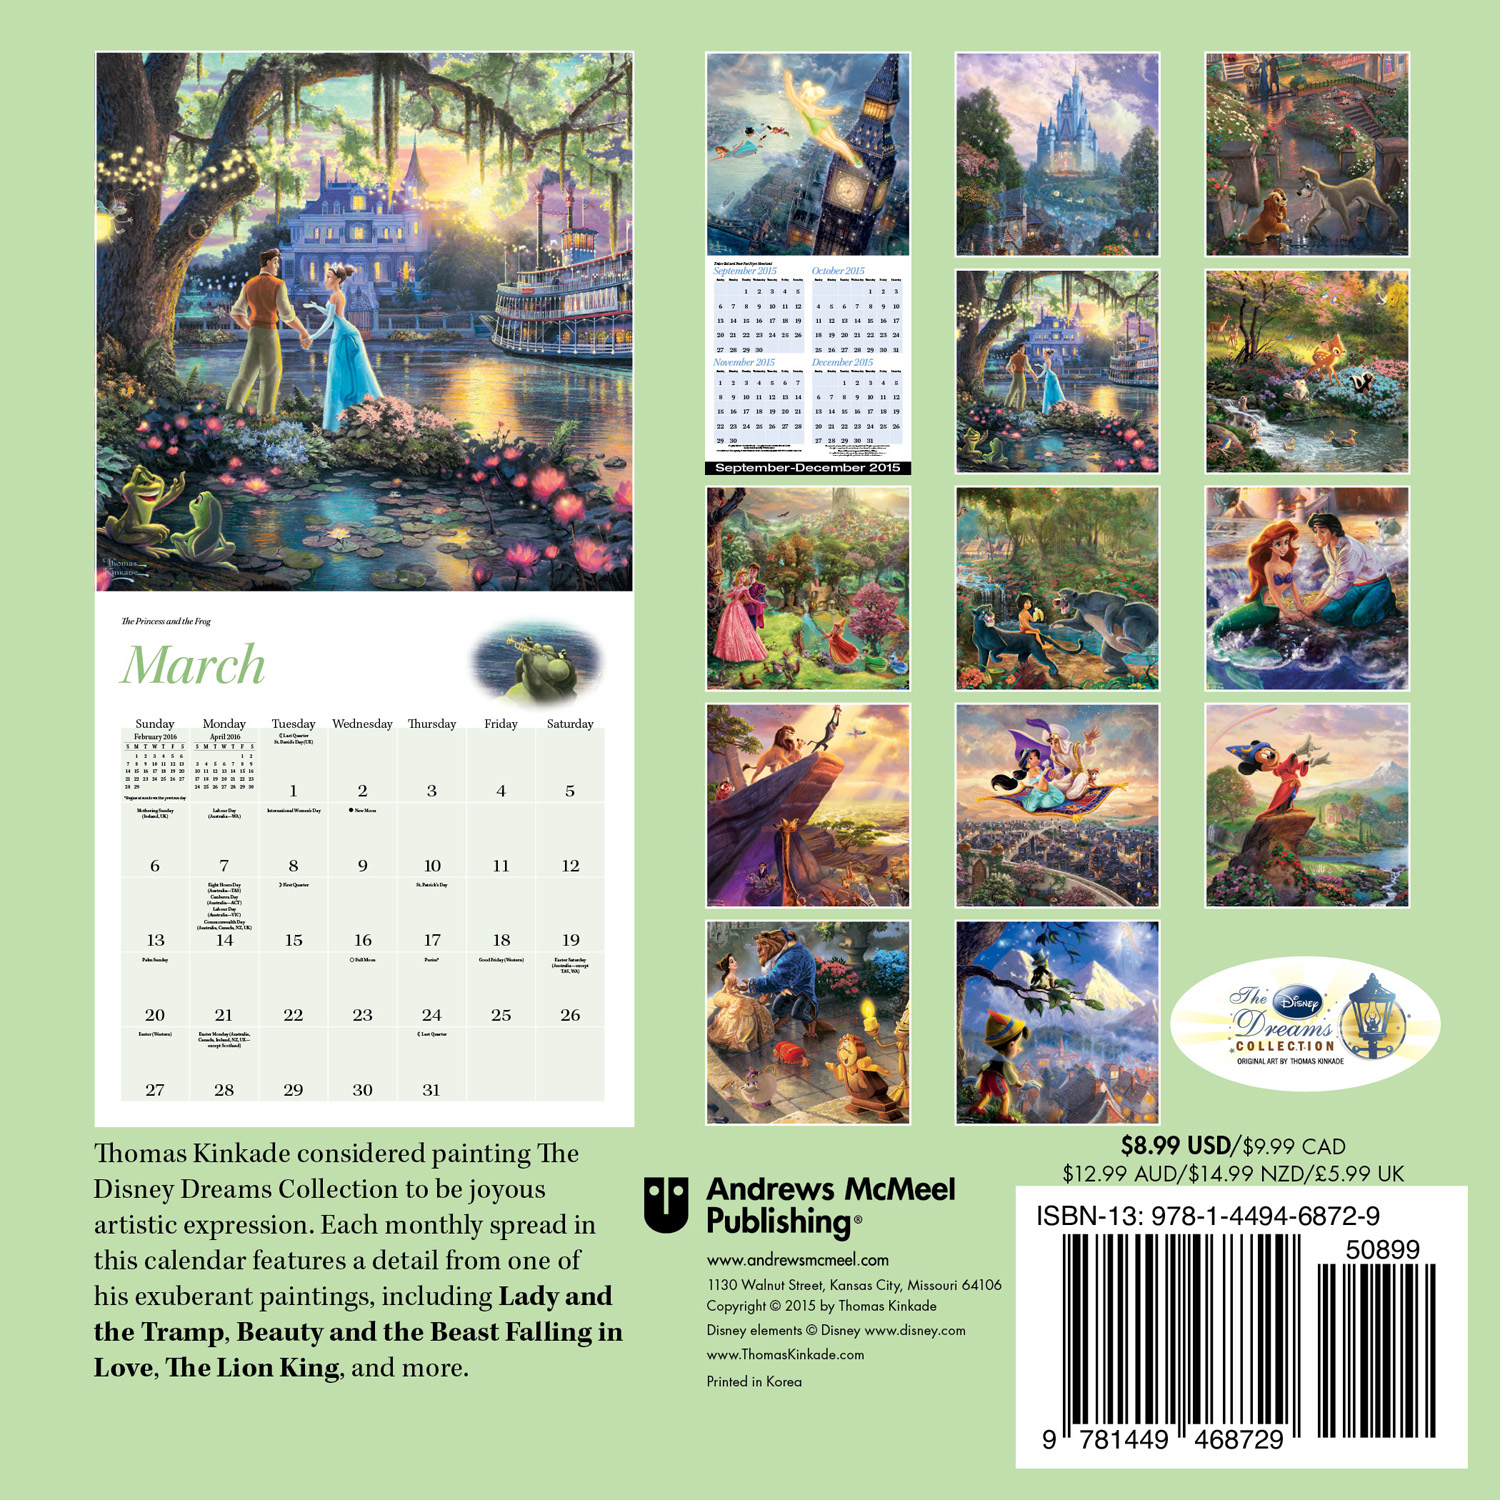 Thomas Kinkade: The Disney Dreams Collection Mini Wall Calendar 2016 back 9781449468729